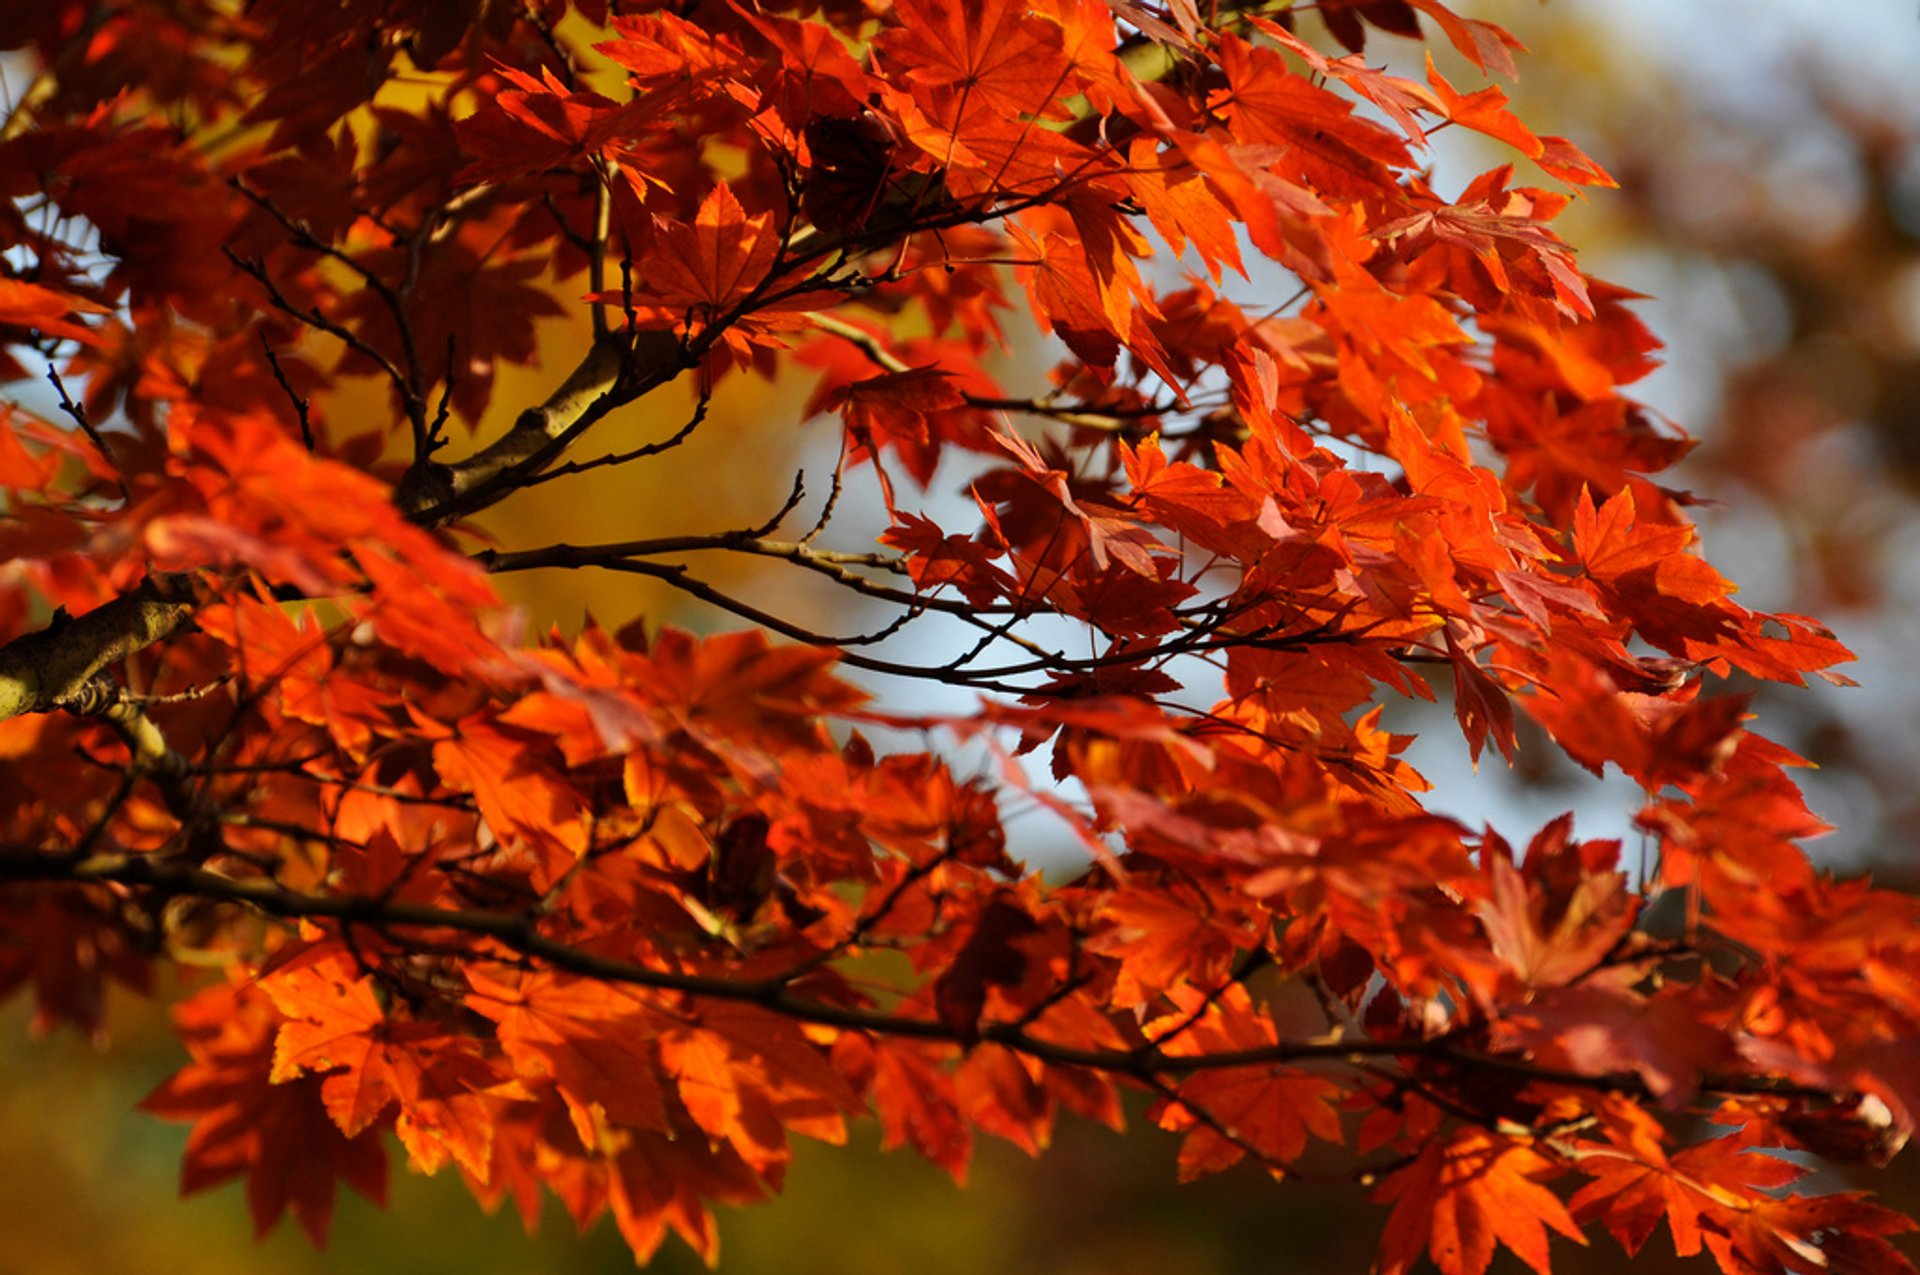 Autumn in Japan 2020 - Best Time